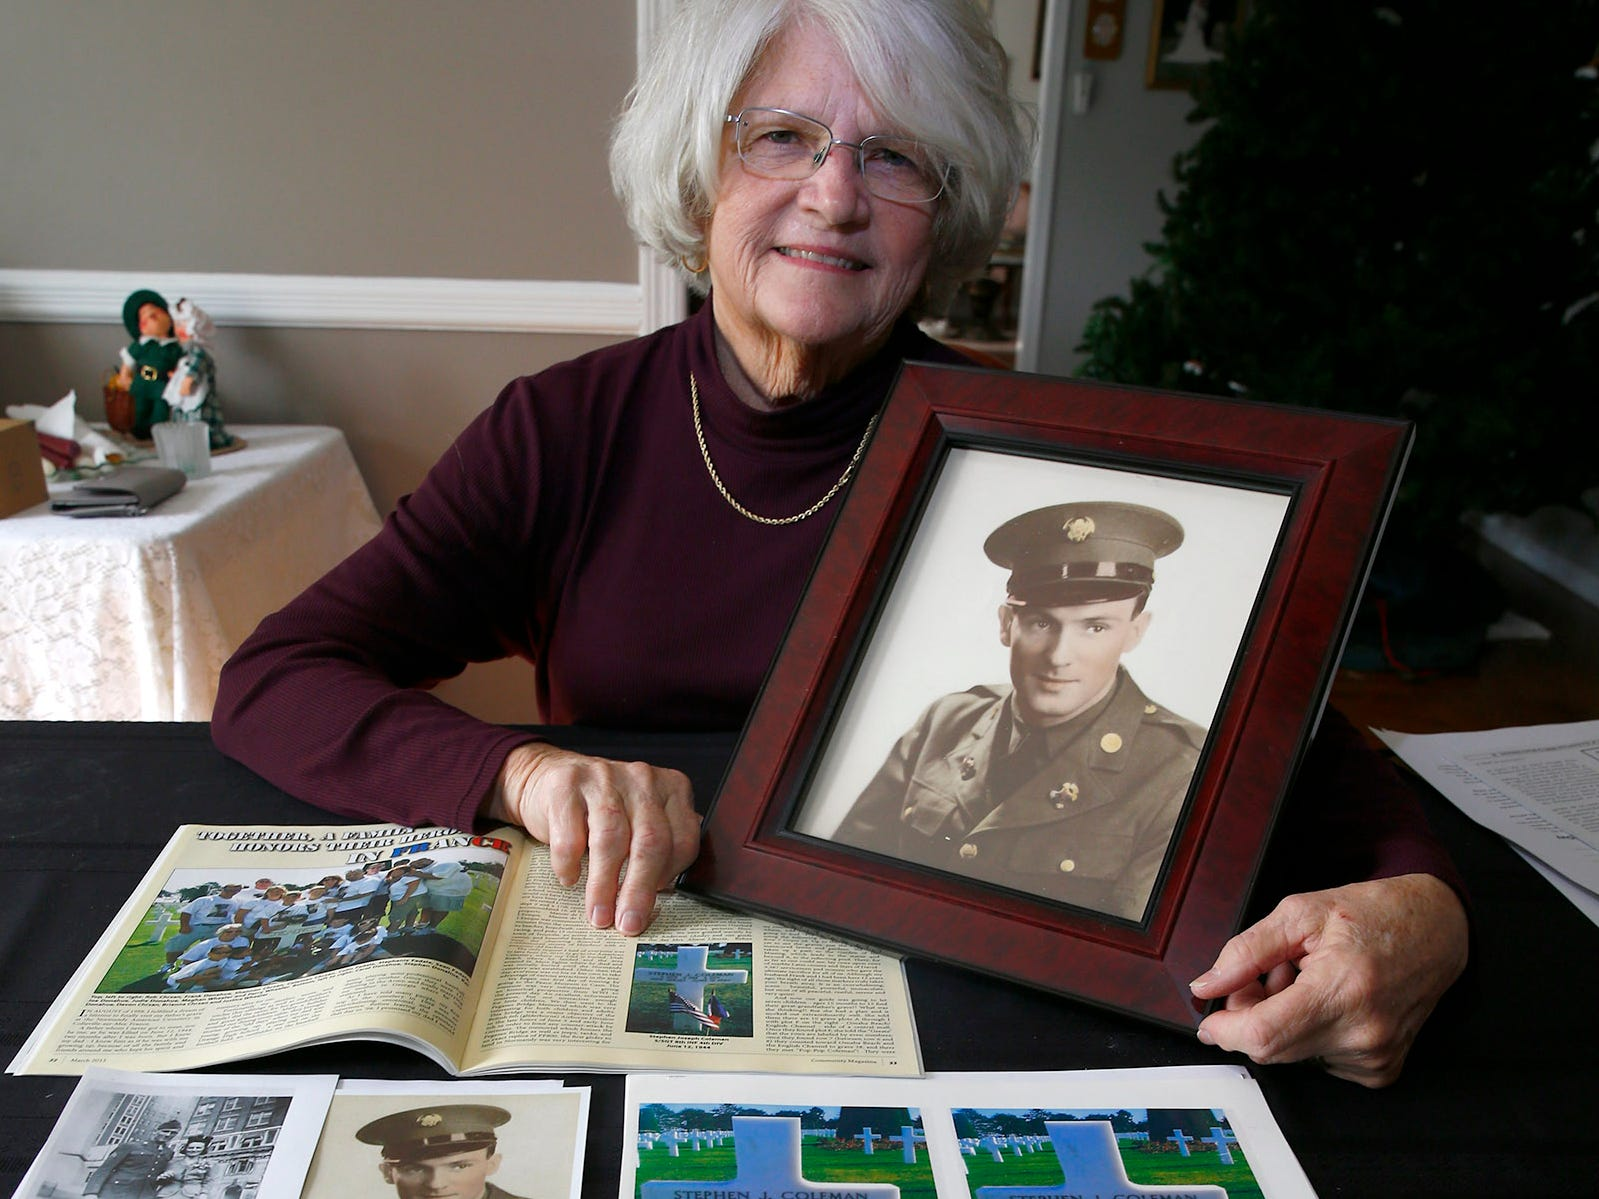 Carol Donahue holds a photo of her father, Stephen J. Coleman, amongst other memorabilia in her Colts Neck home Thursday, November 8, 2018.  He was killed in the D-Day invasion.